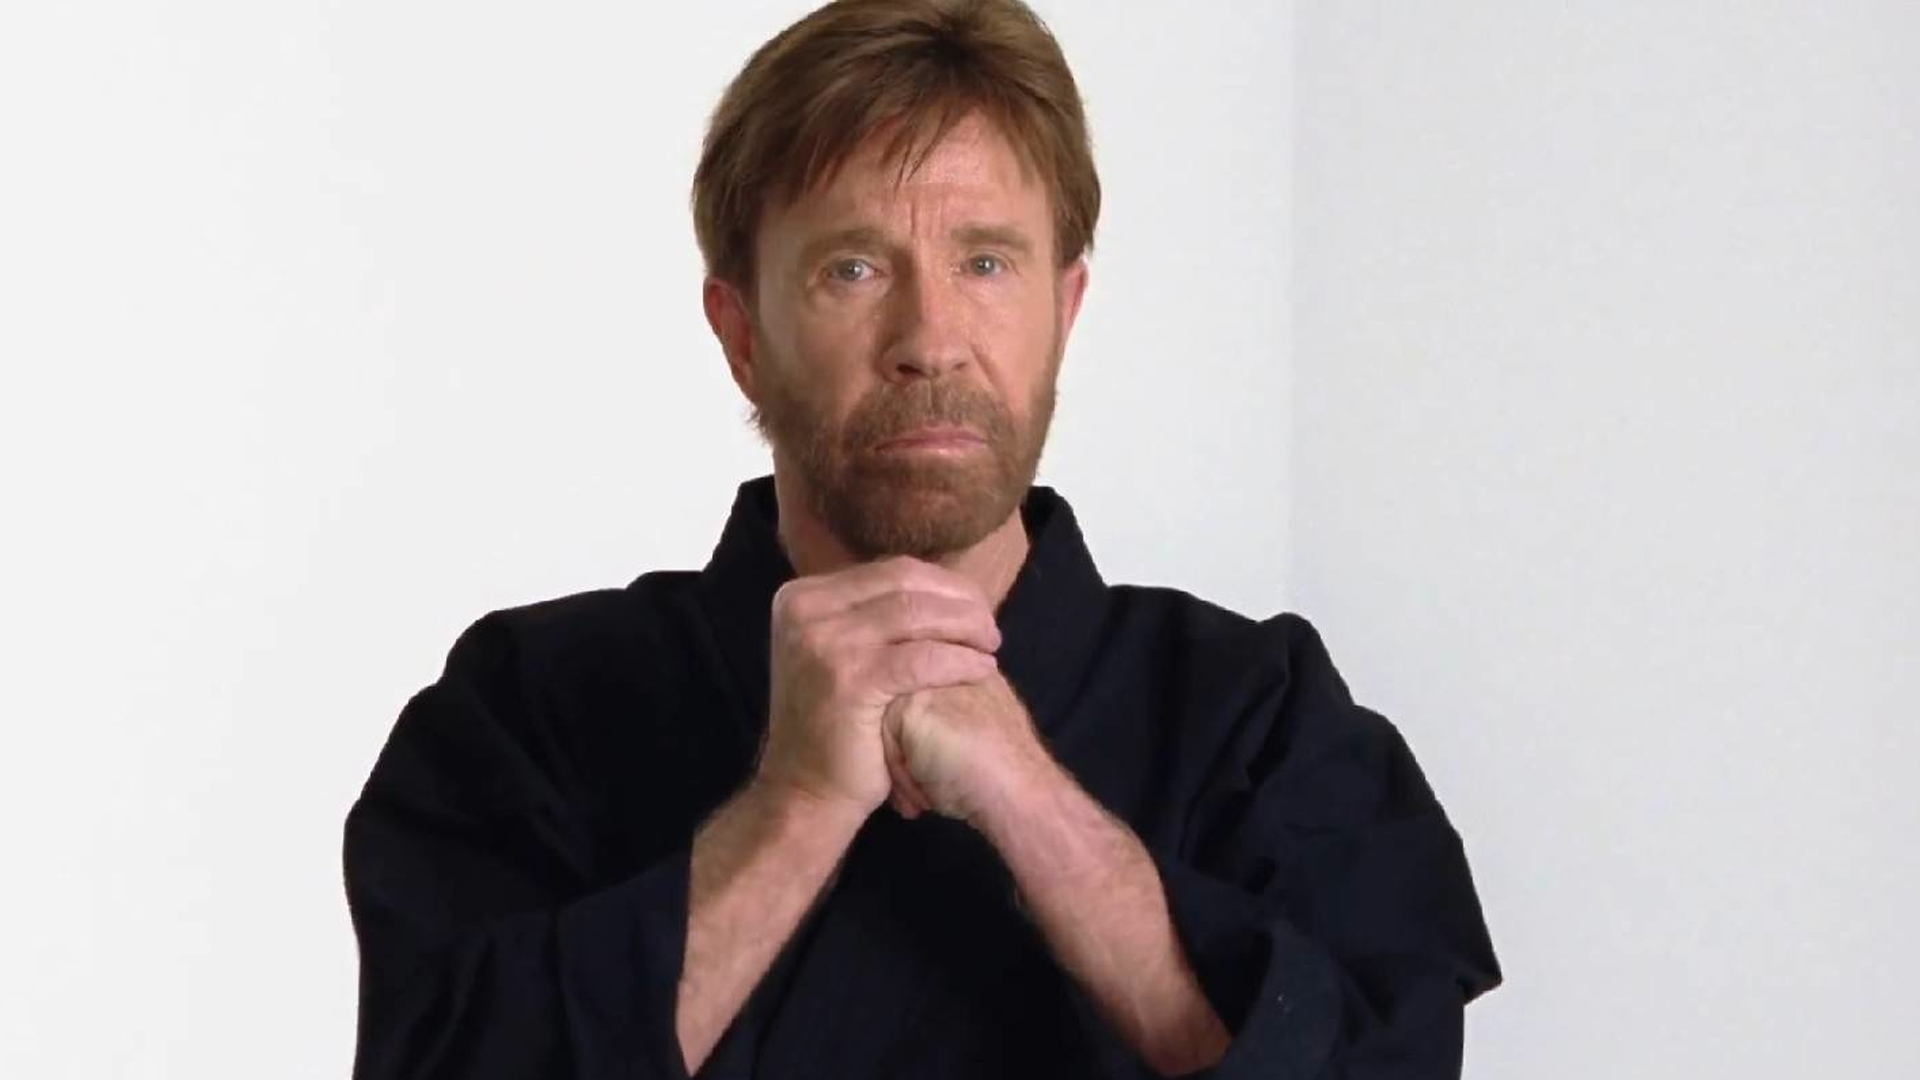 SPREAD THIS: Chuck Norris Demands the 50 States Do THIS to Stop Obama. ""